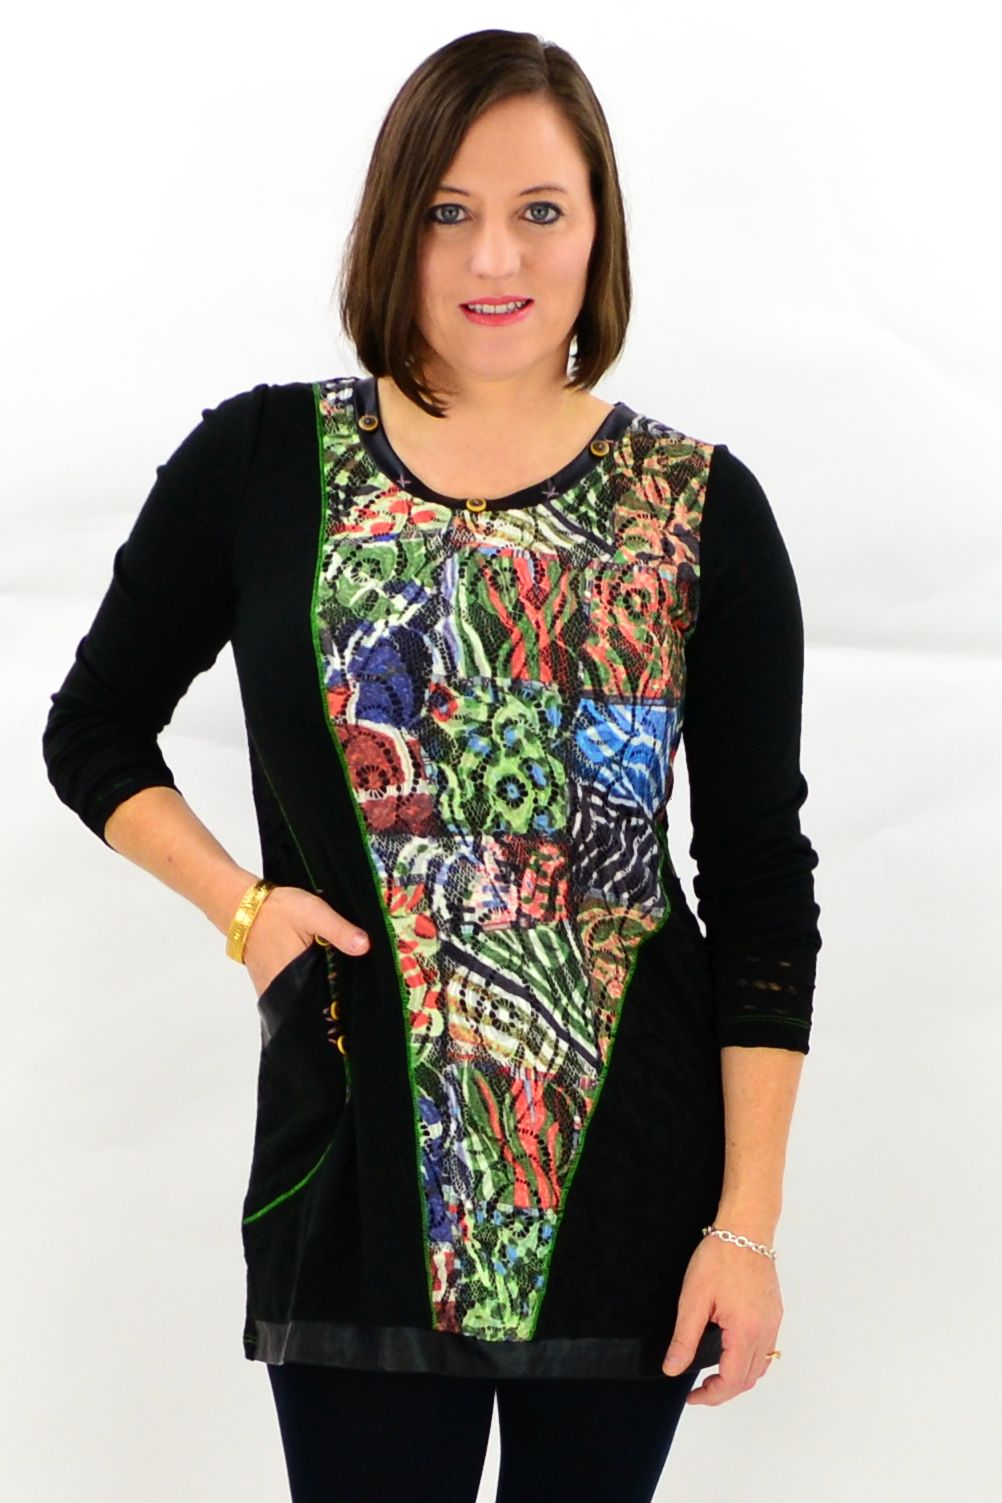 Model wearing David Jessie winter tunic top. Available at ilovetunics.com